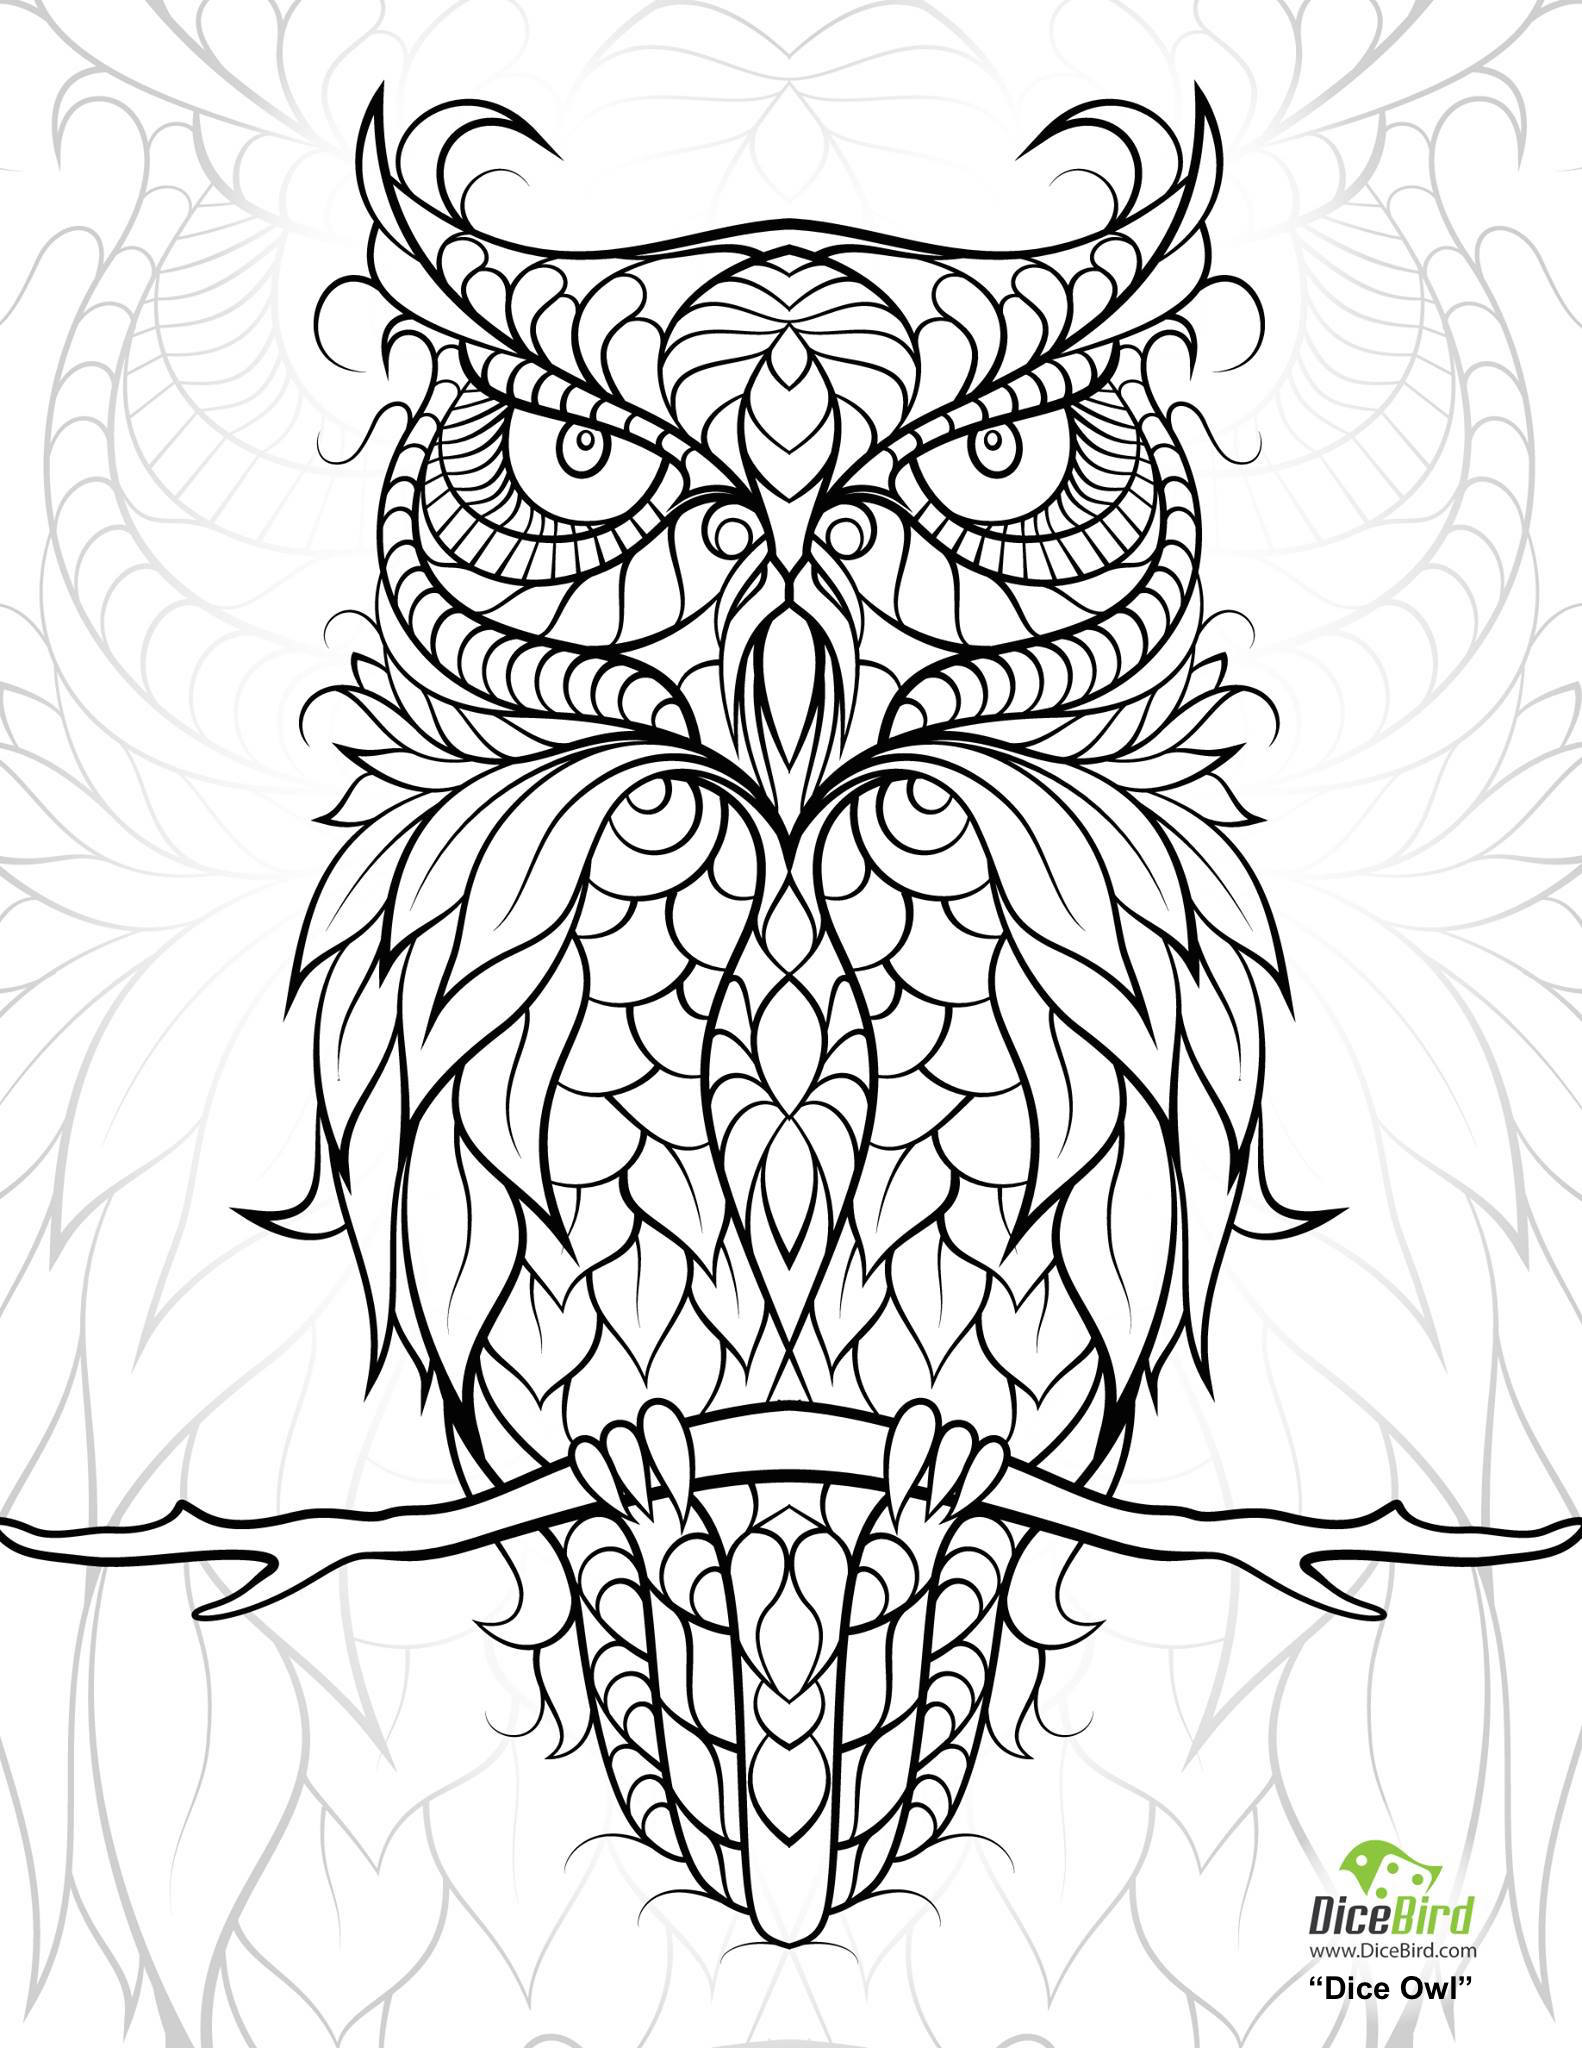 FREE Coloring Pages - Adult Coloring Worldwide